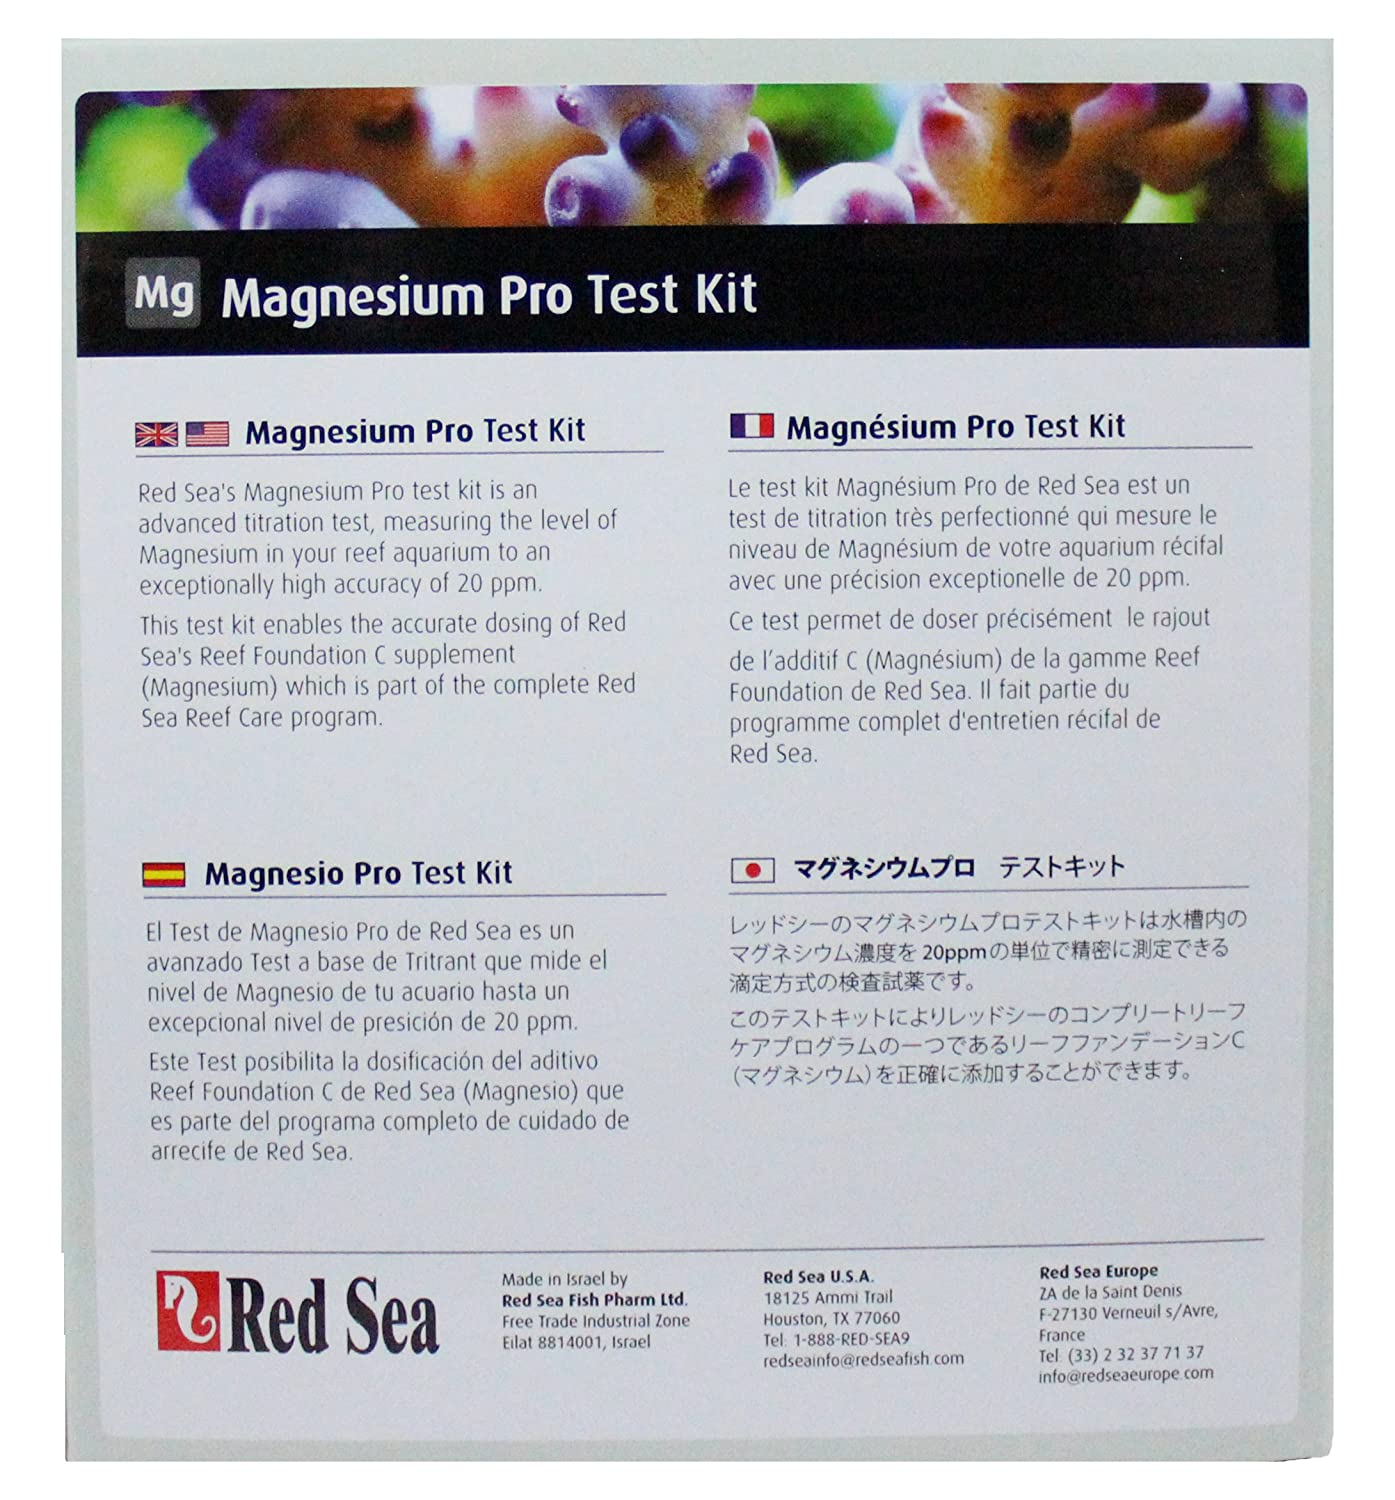 Red Sea r21415 Magnesio Pro Test Kit 100 Pruebas: Amazon.es: Productos para mascotas